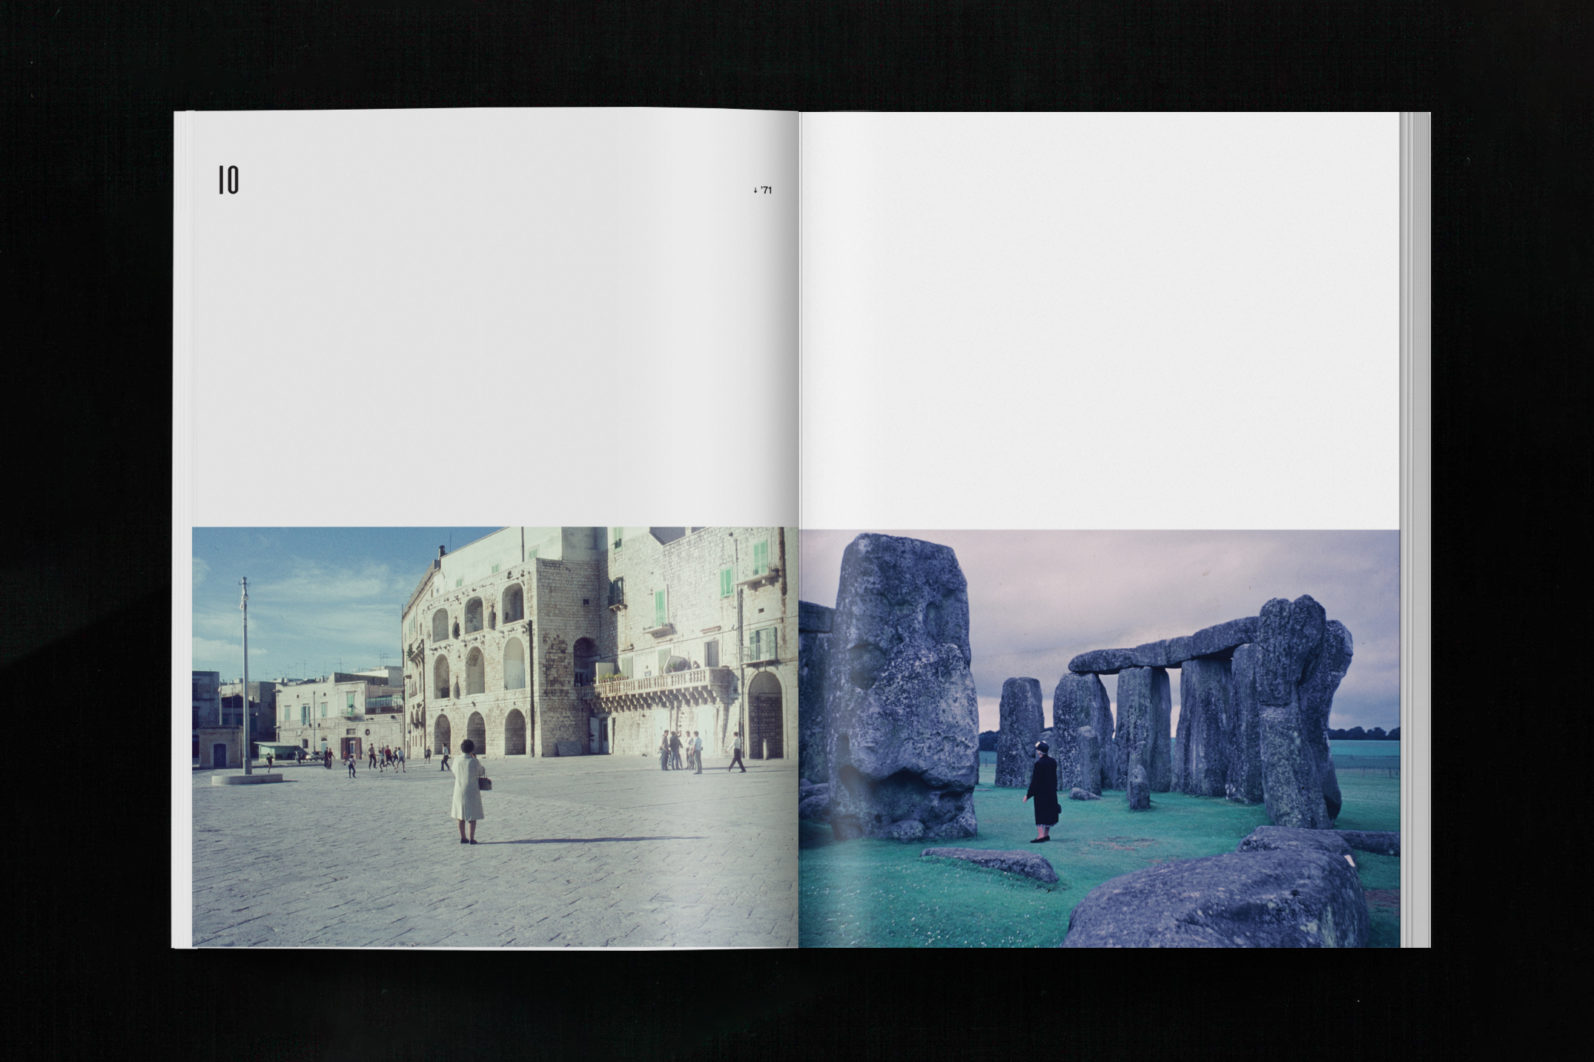 VACATIONIST spread showing two images of two women standing alone, one in a Roman square and one at Stonehenge